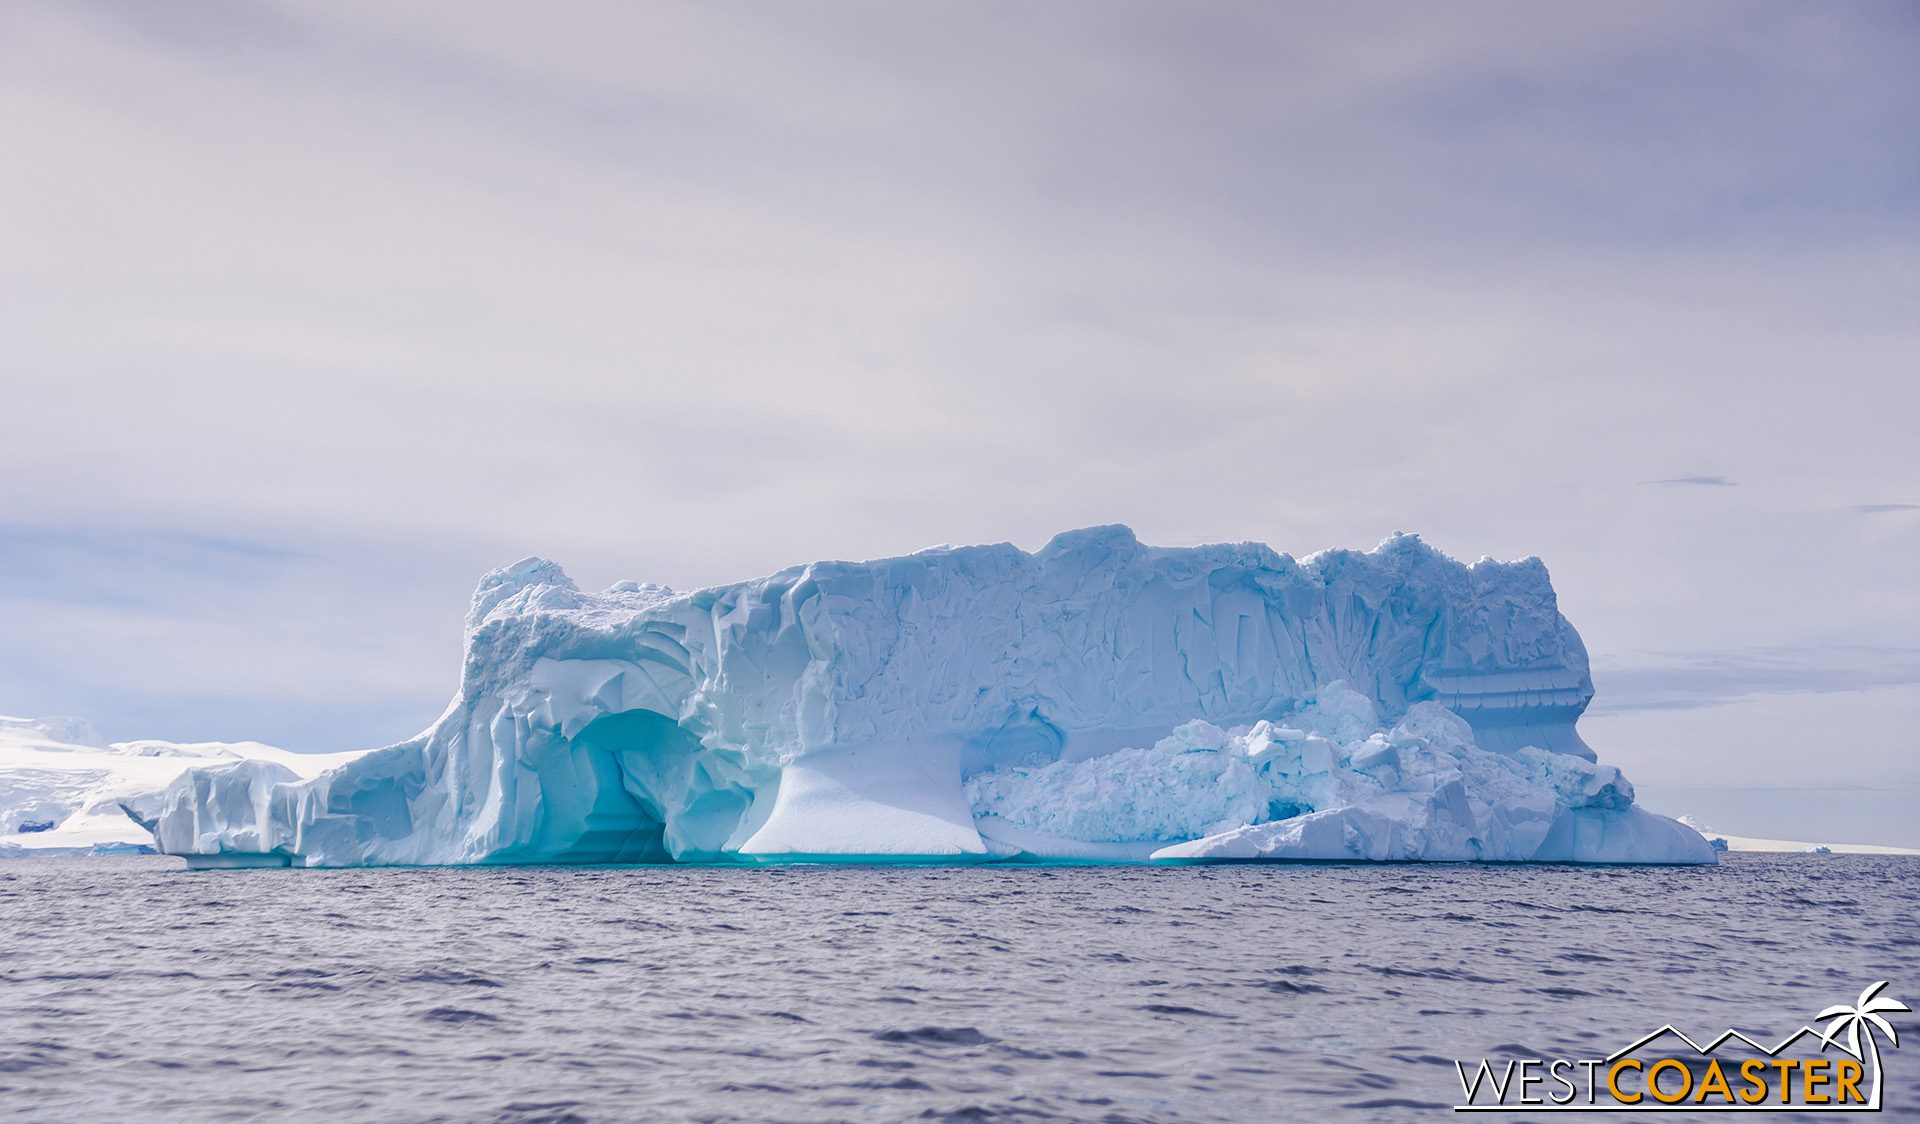 Passing an especially large and exquisite iceberg.